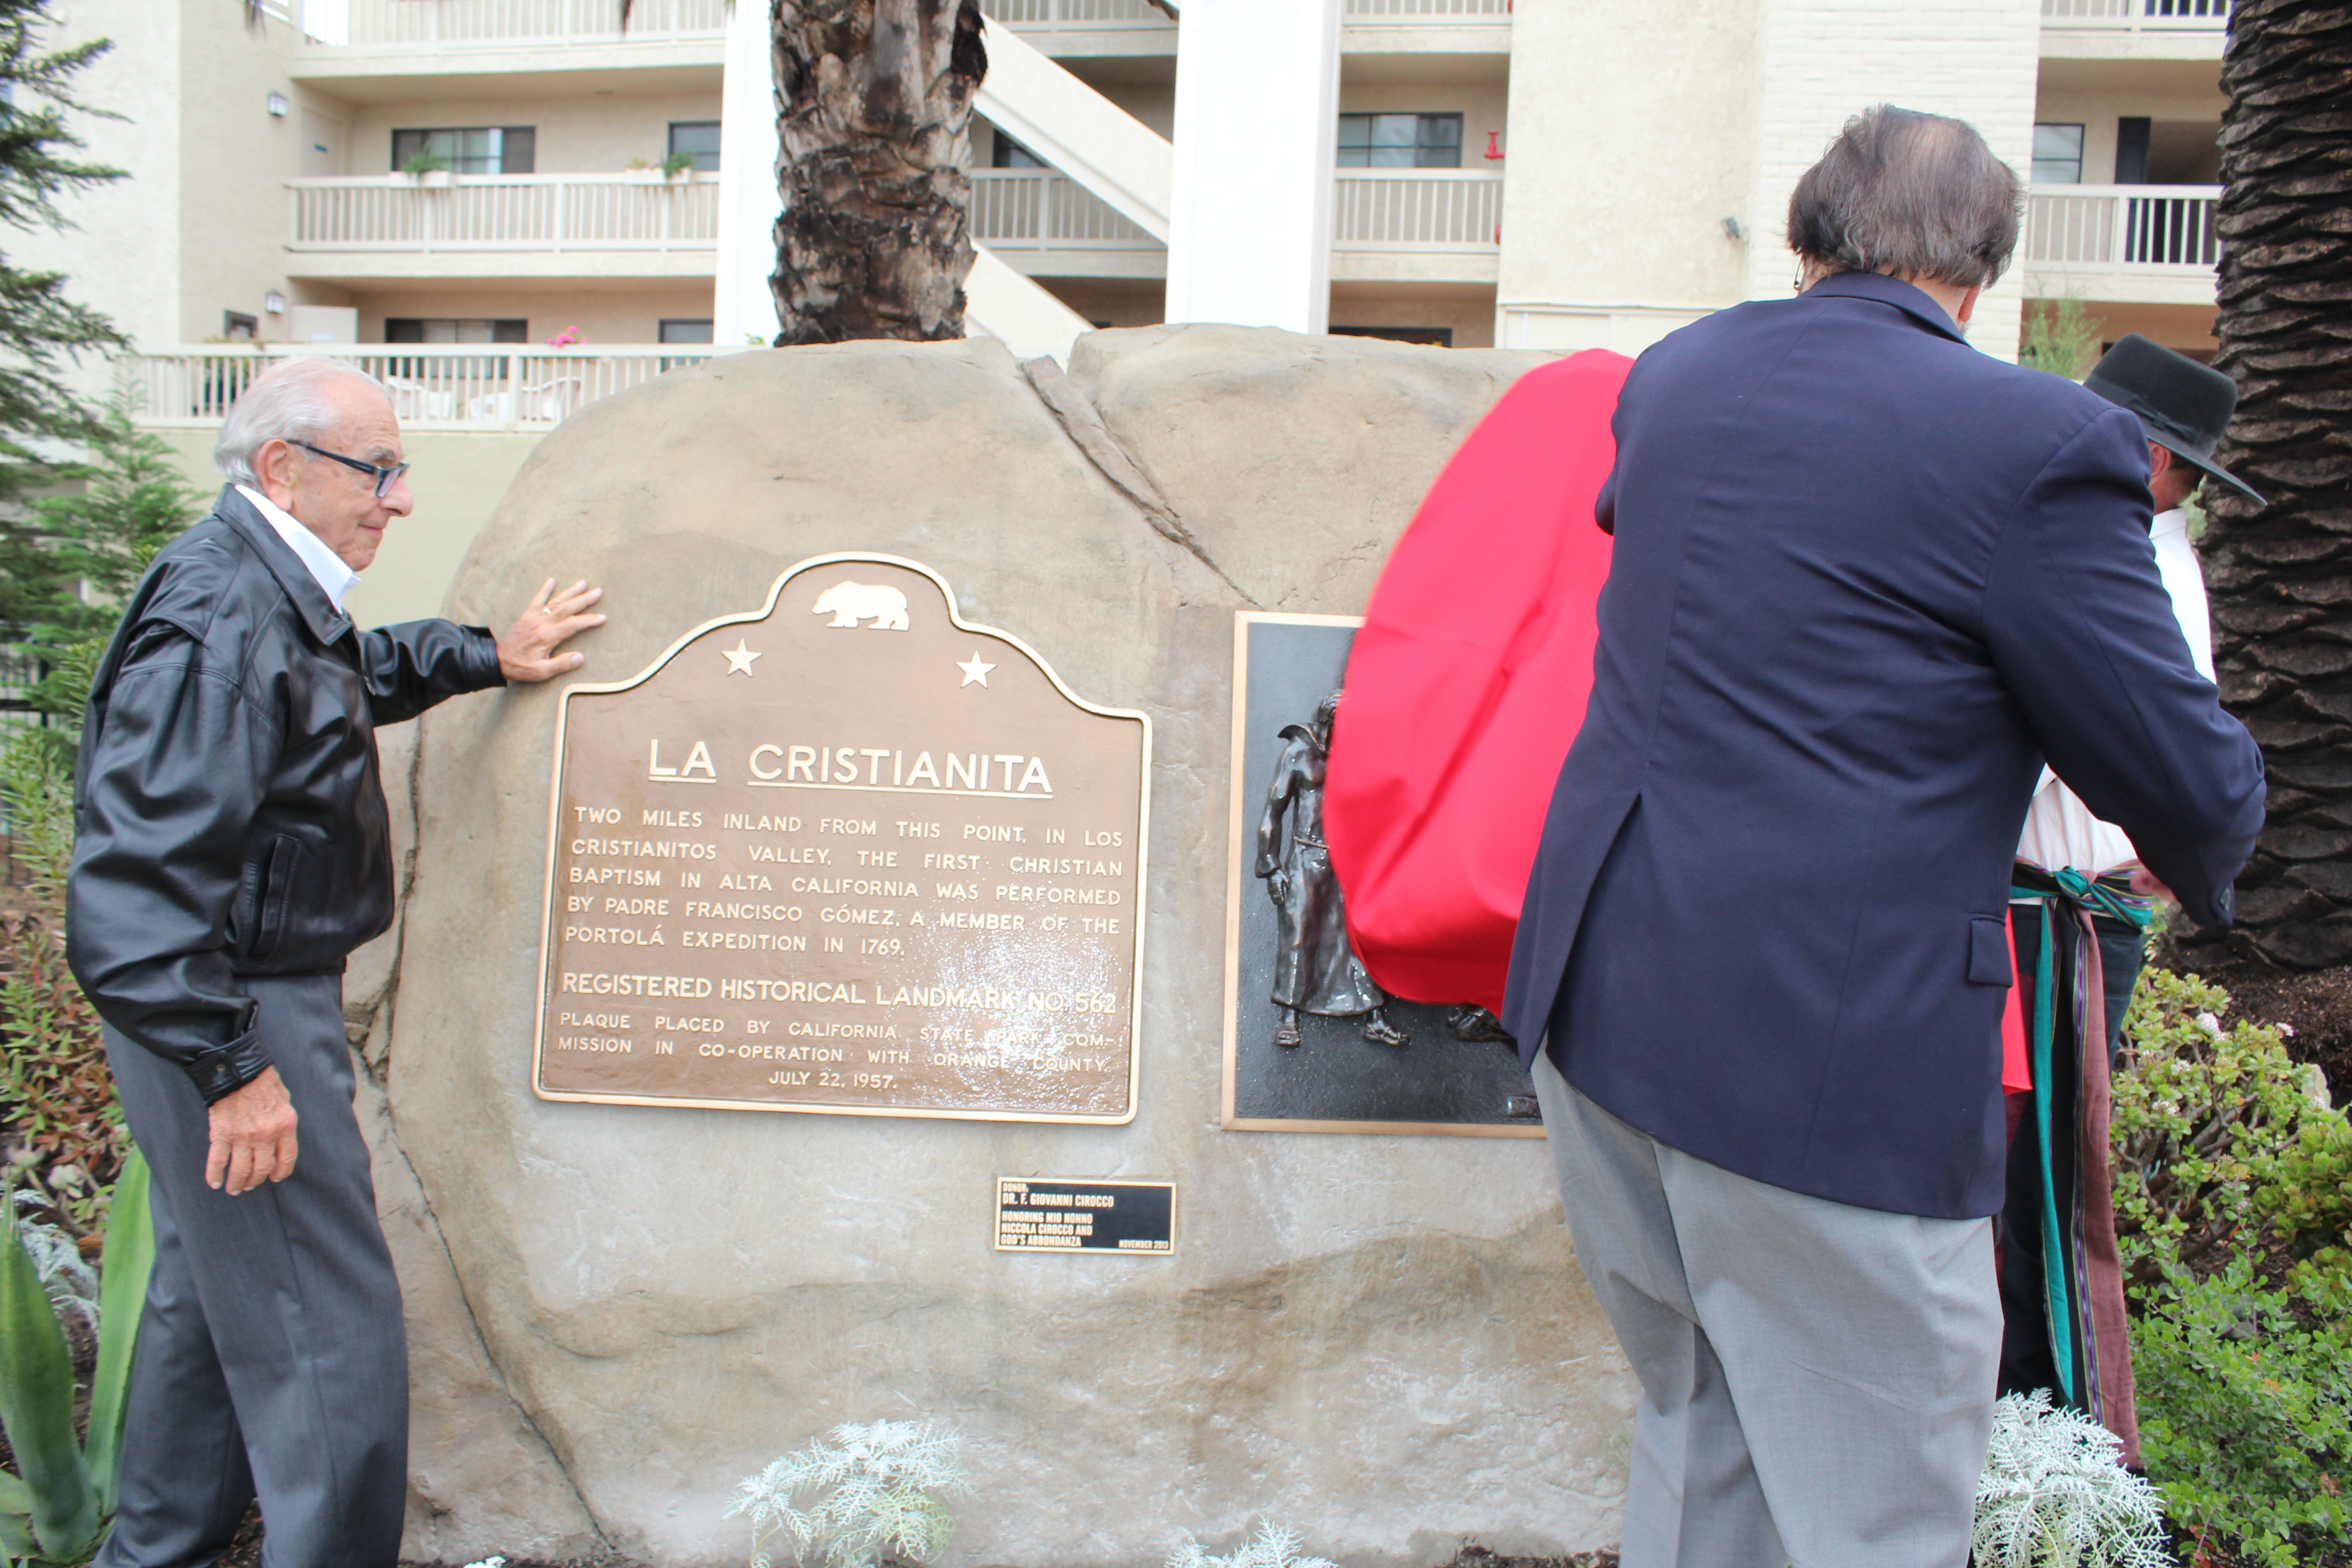 Cirocco unveils the monument with help of founding Casa board member Guy Varriano, left, and Mike Fitzsimmons.